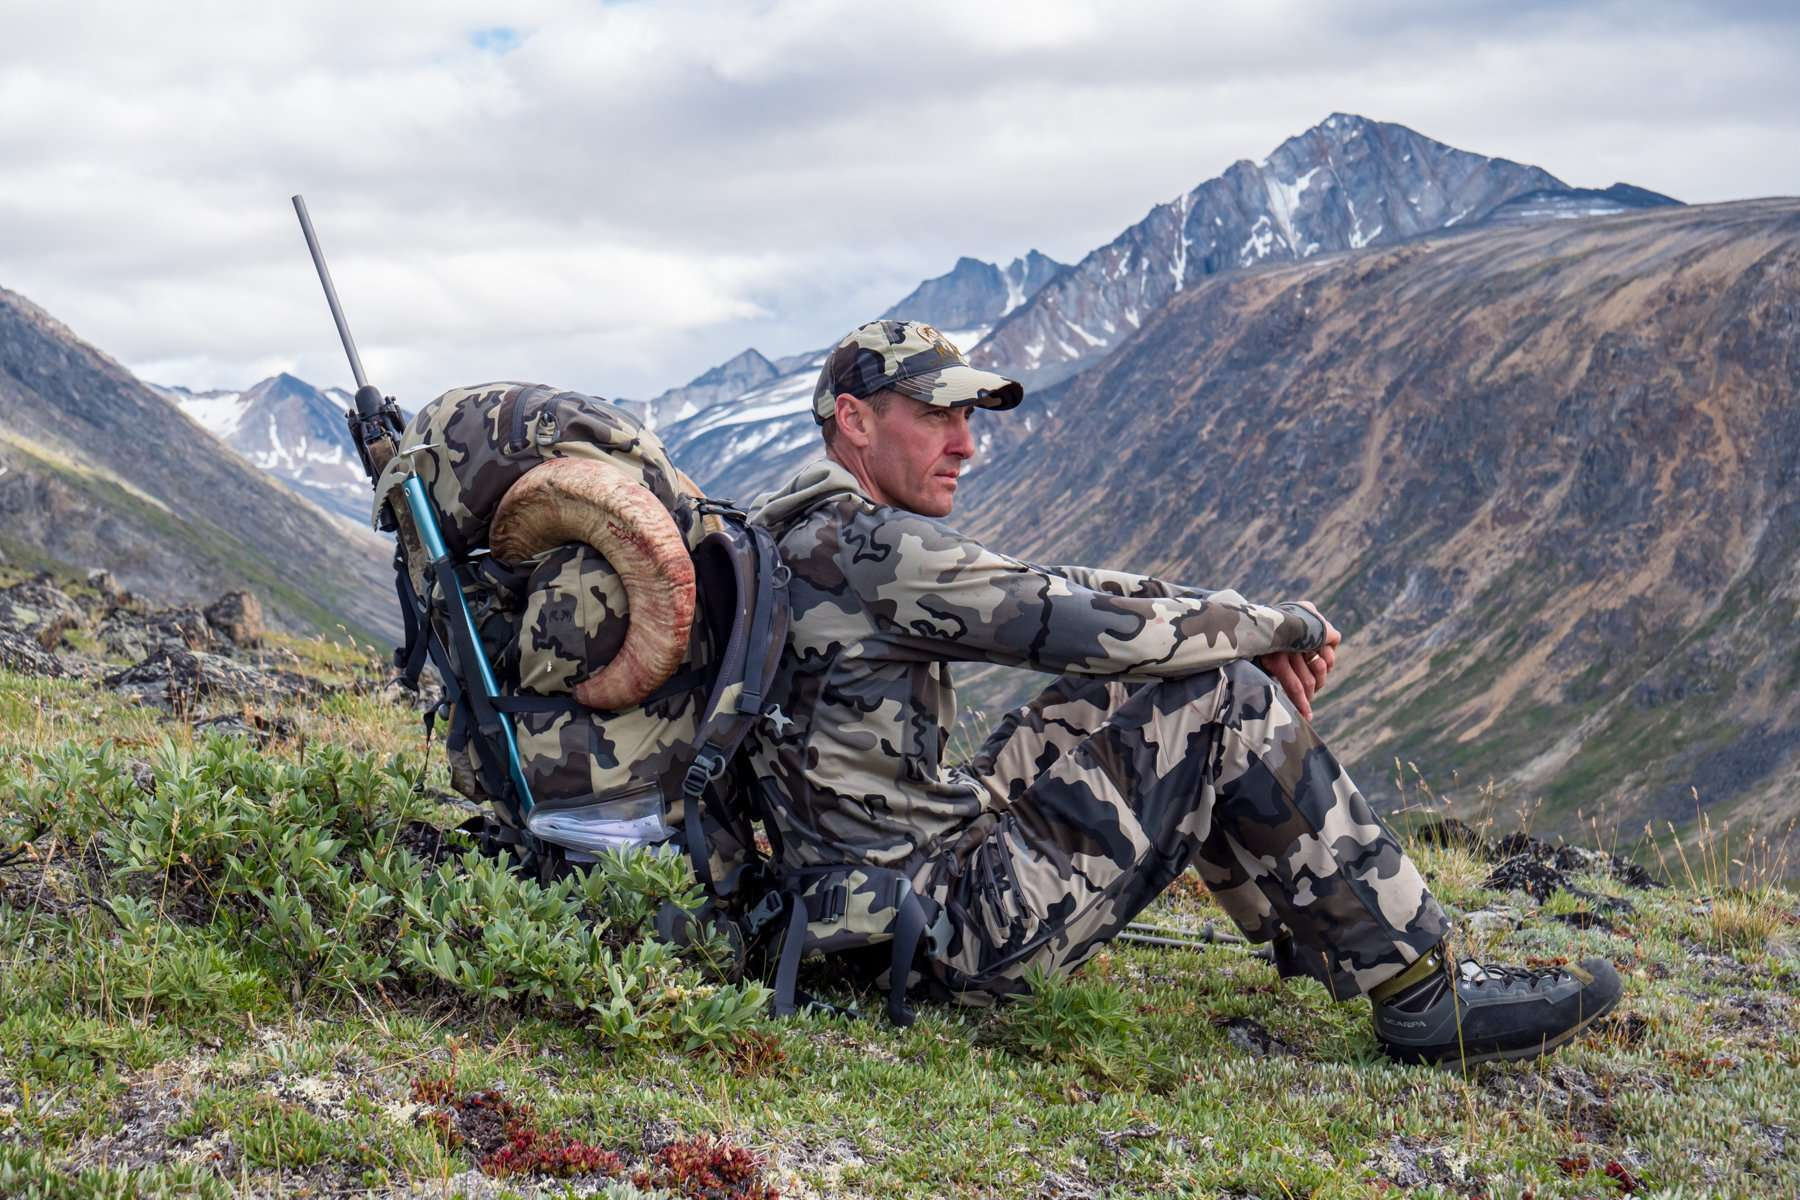 Protected: Off the Beaten Path: Dall's Sheep